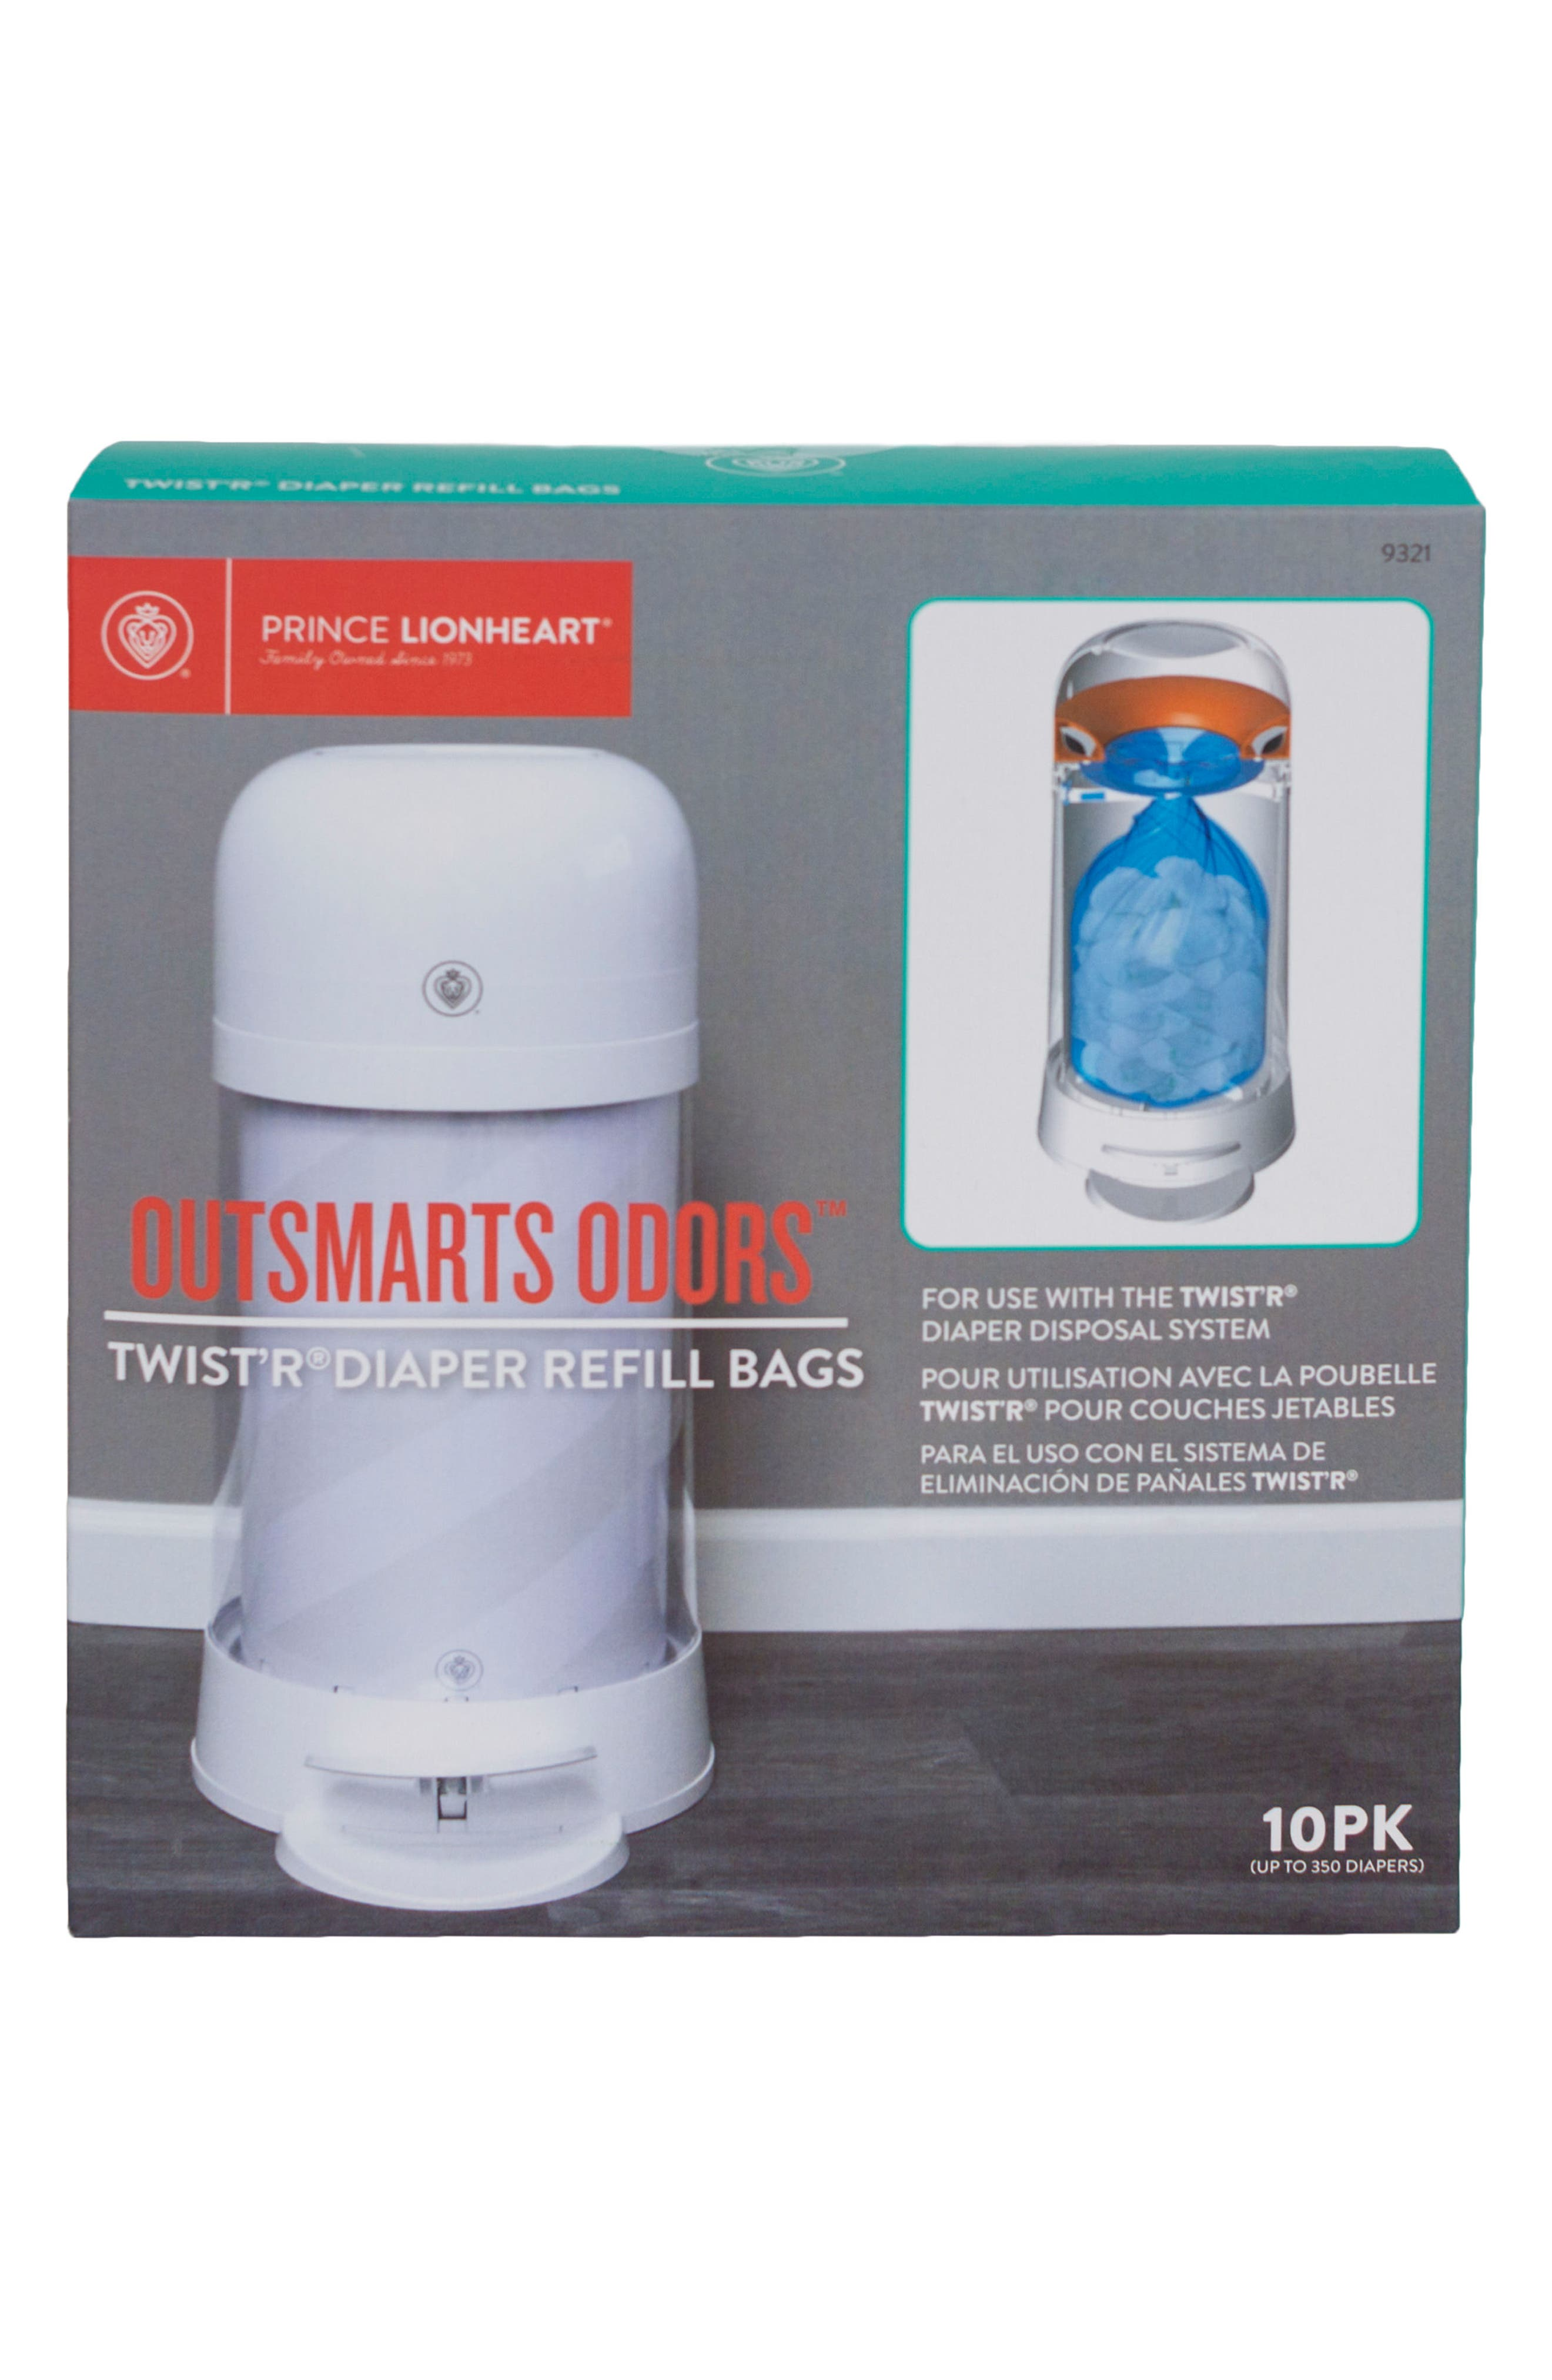 Alternate Image 2  - Prince Lionheart Twist'r Diaper Disposal System Set of 10 Refill Bags